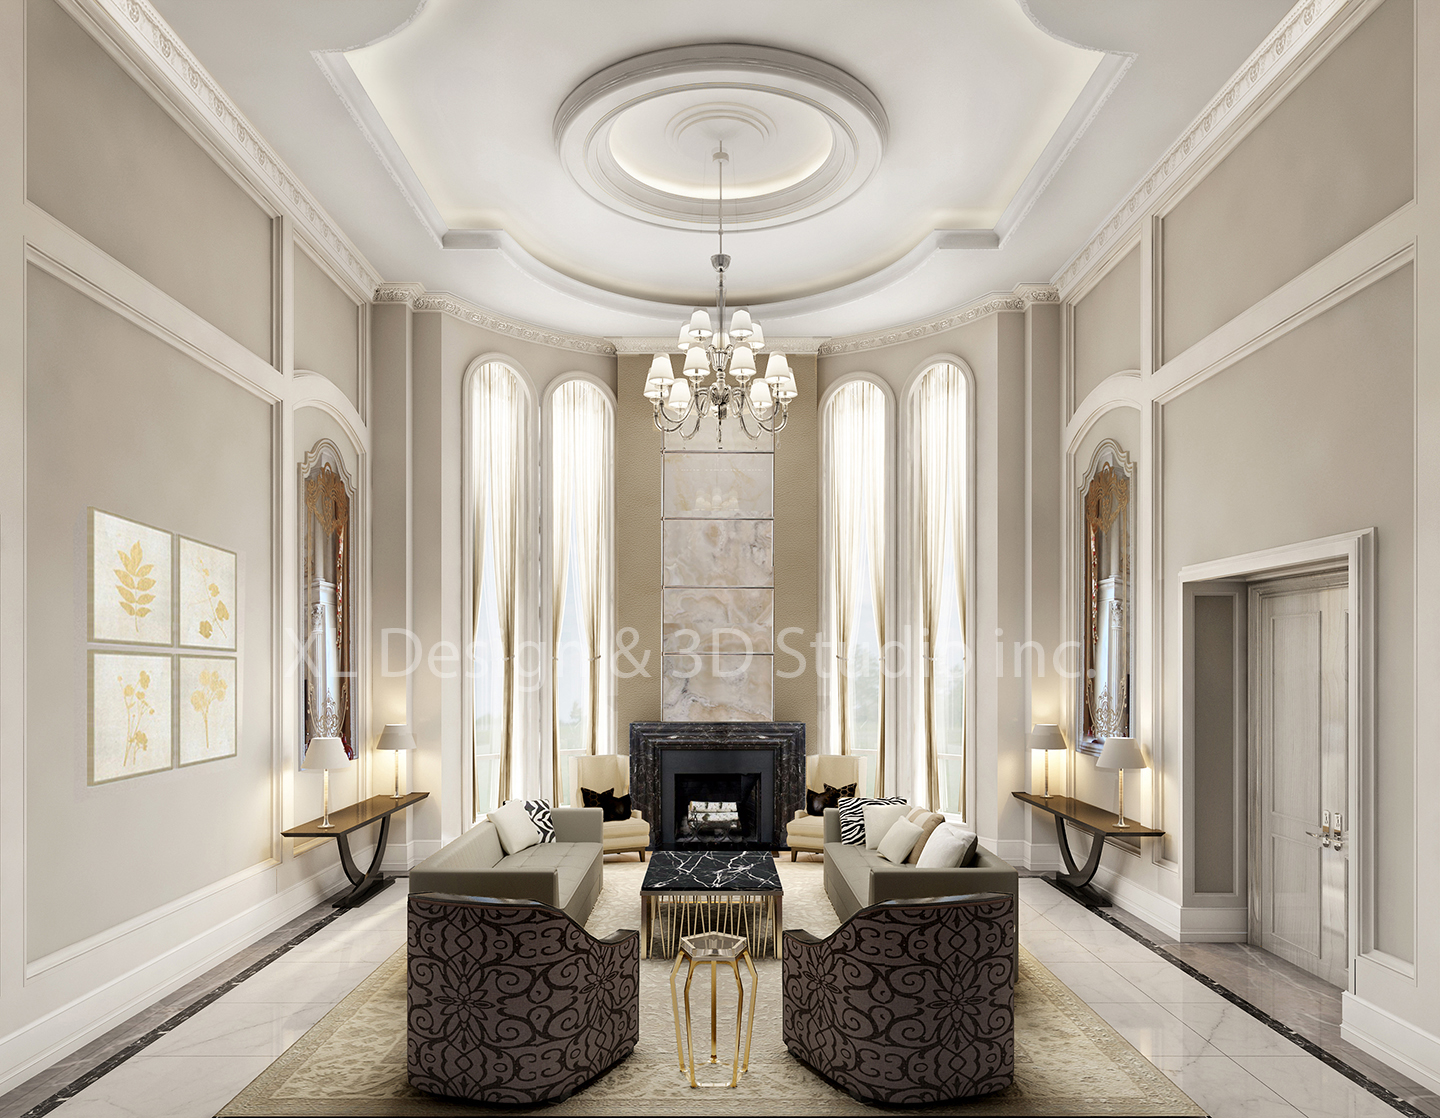 XL Design_ great room rendering